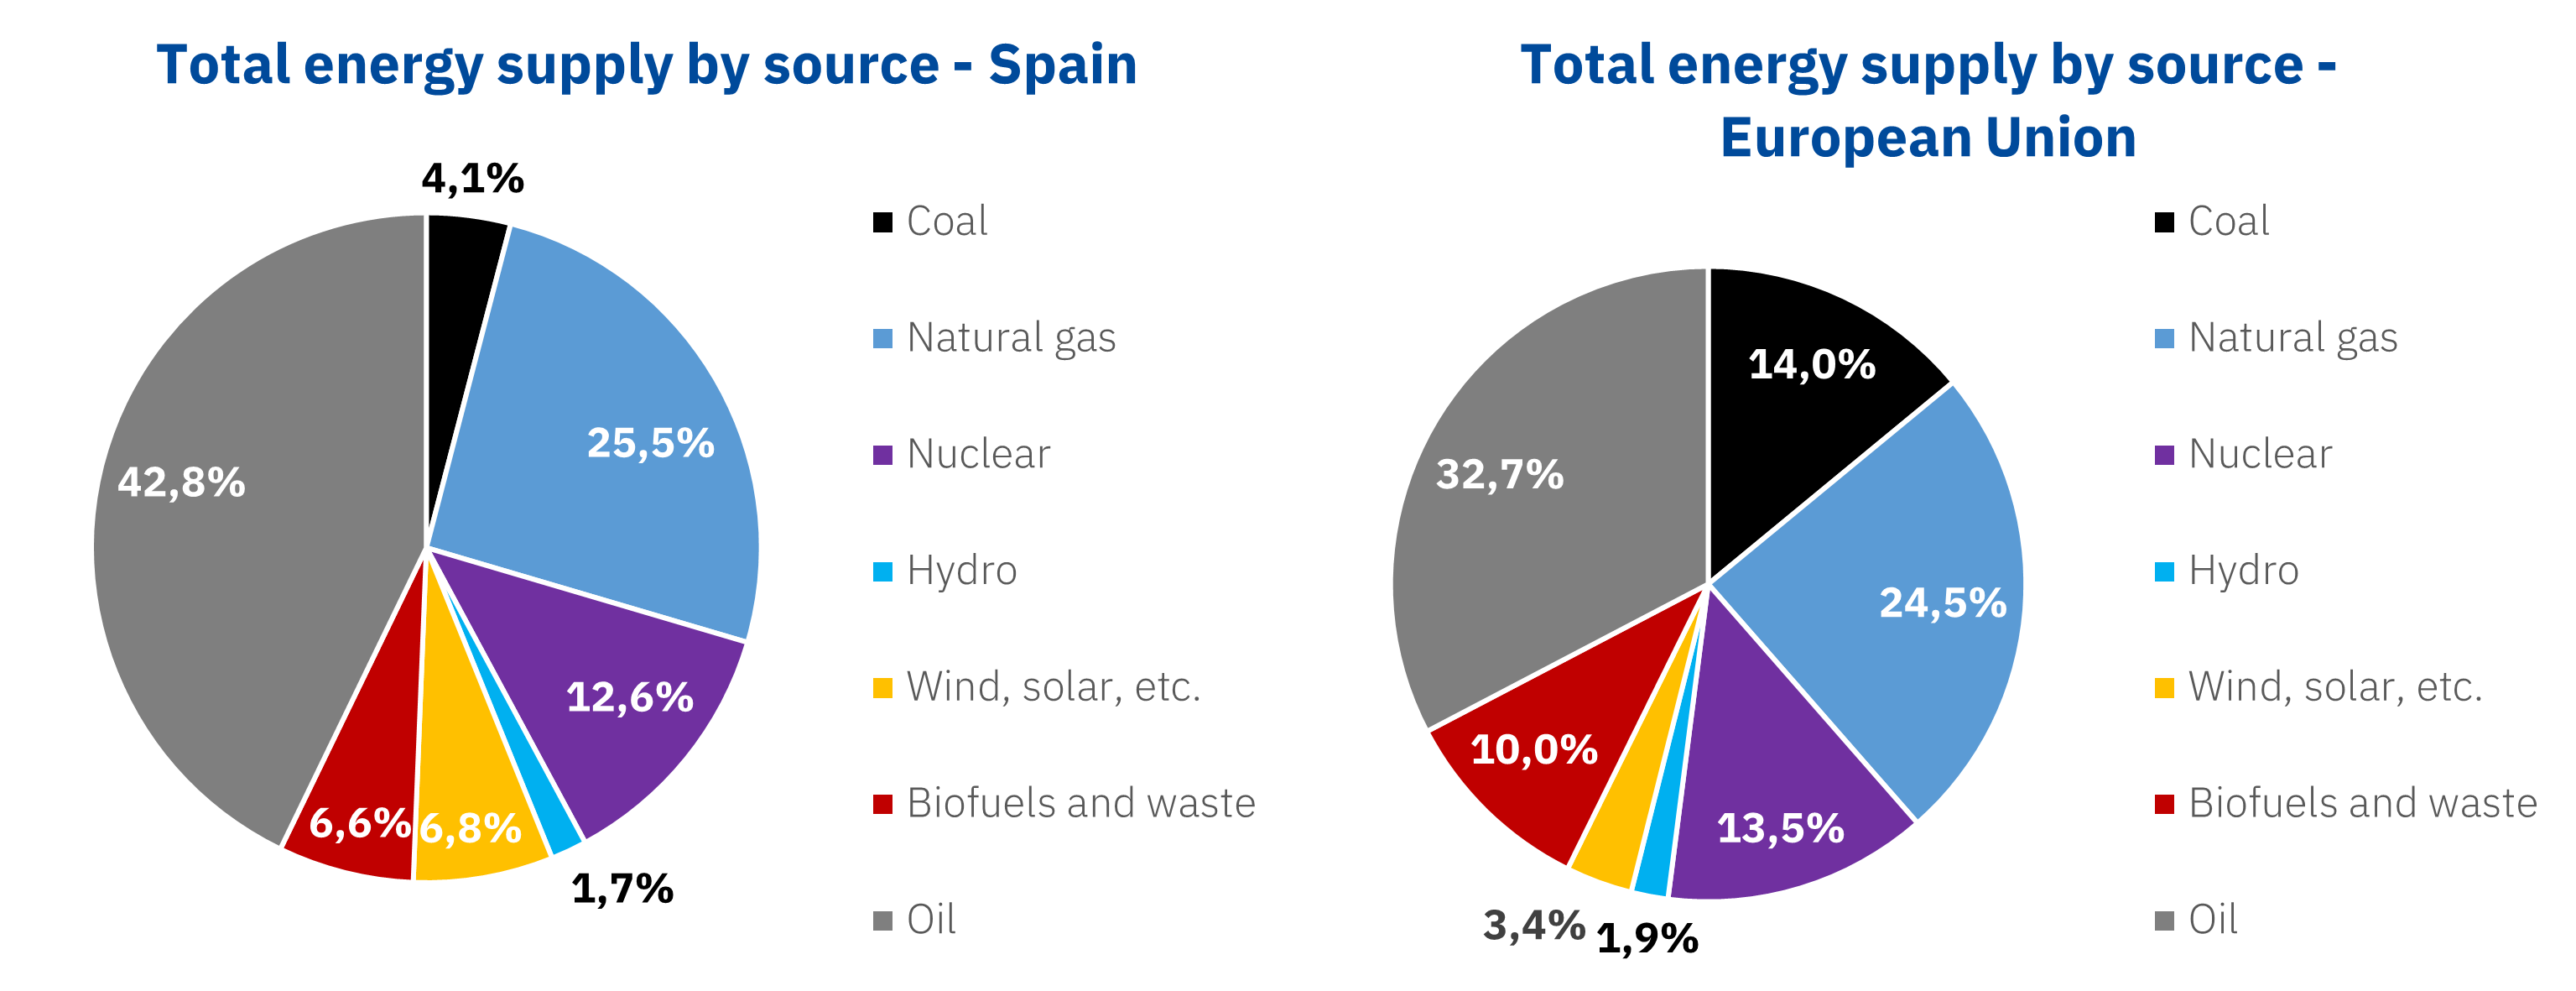 AleaSoft - Total energy supply Spain Europe